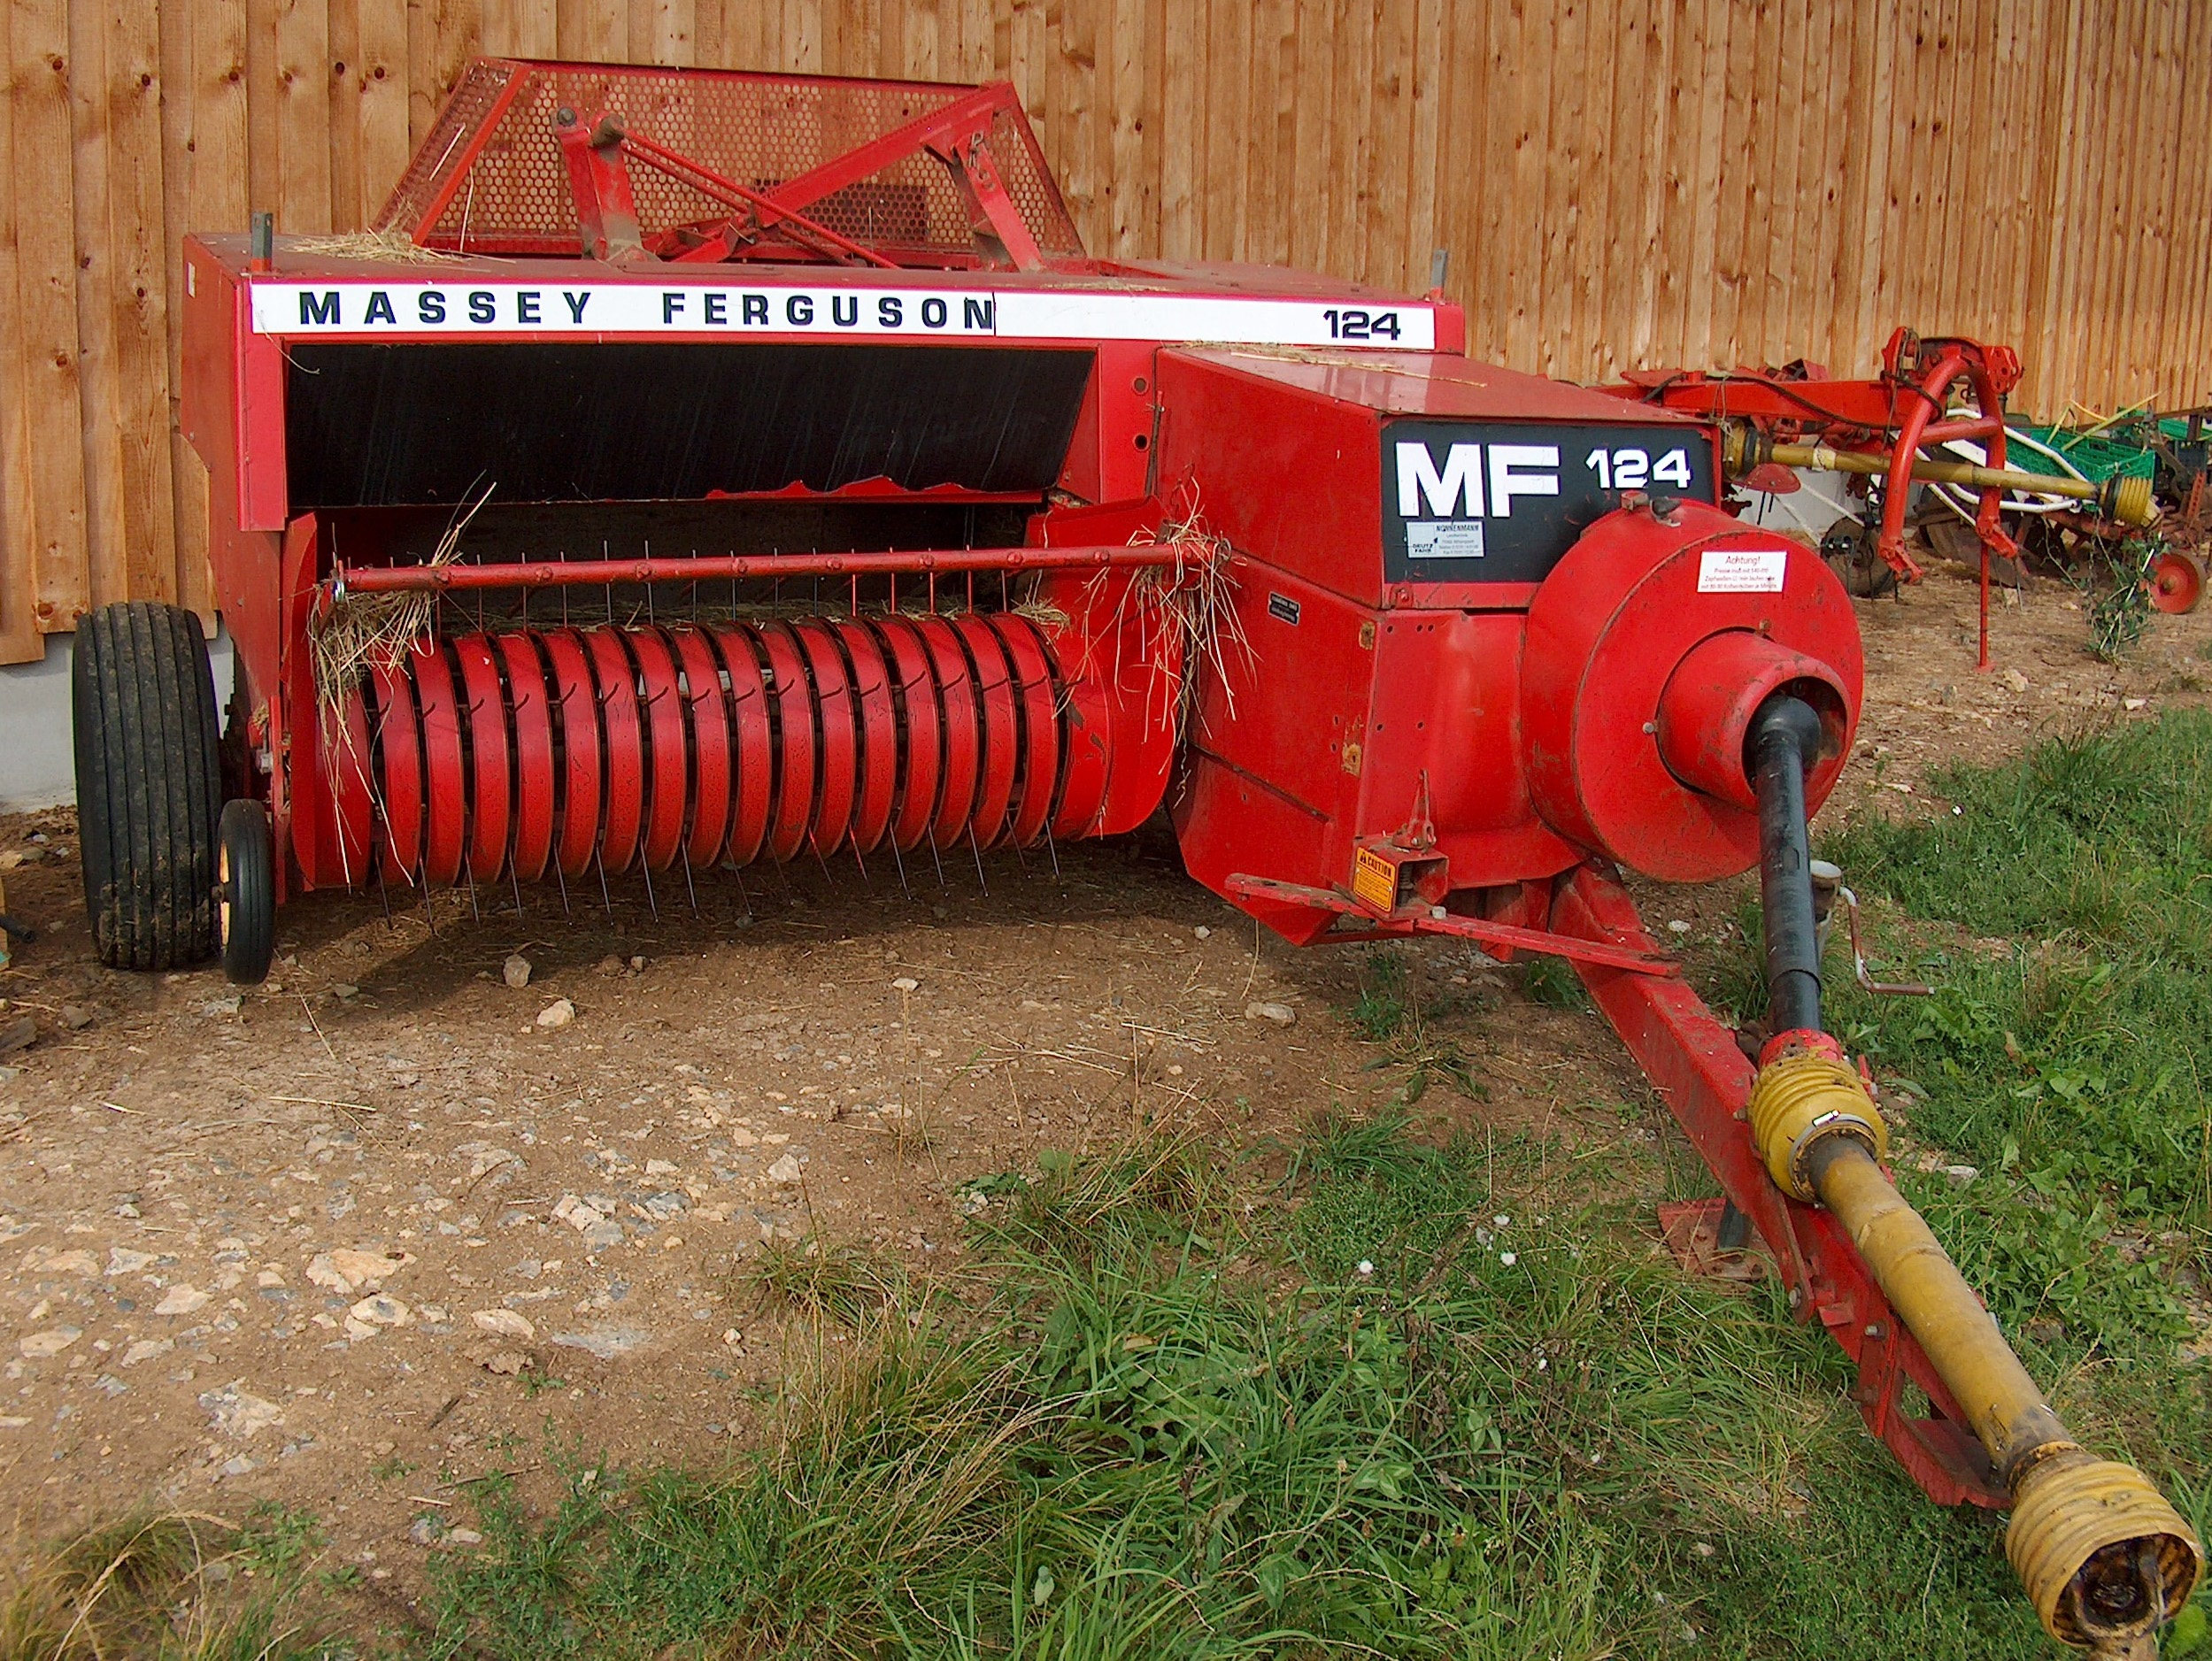 Circuit4diagram blogspot also Massey2005pc in addition Bomag 2010 P 555 further 11 87 Sid116 as well Gear Box 8 Speed. on massey ferguson 65 parts diagram